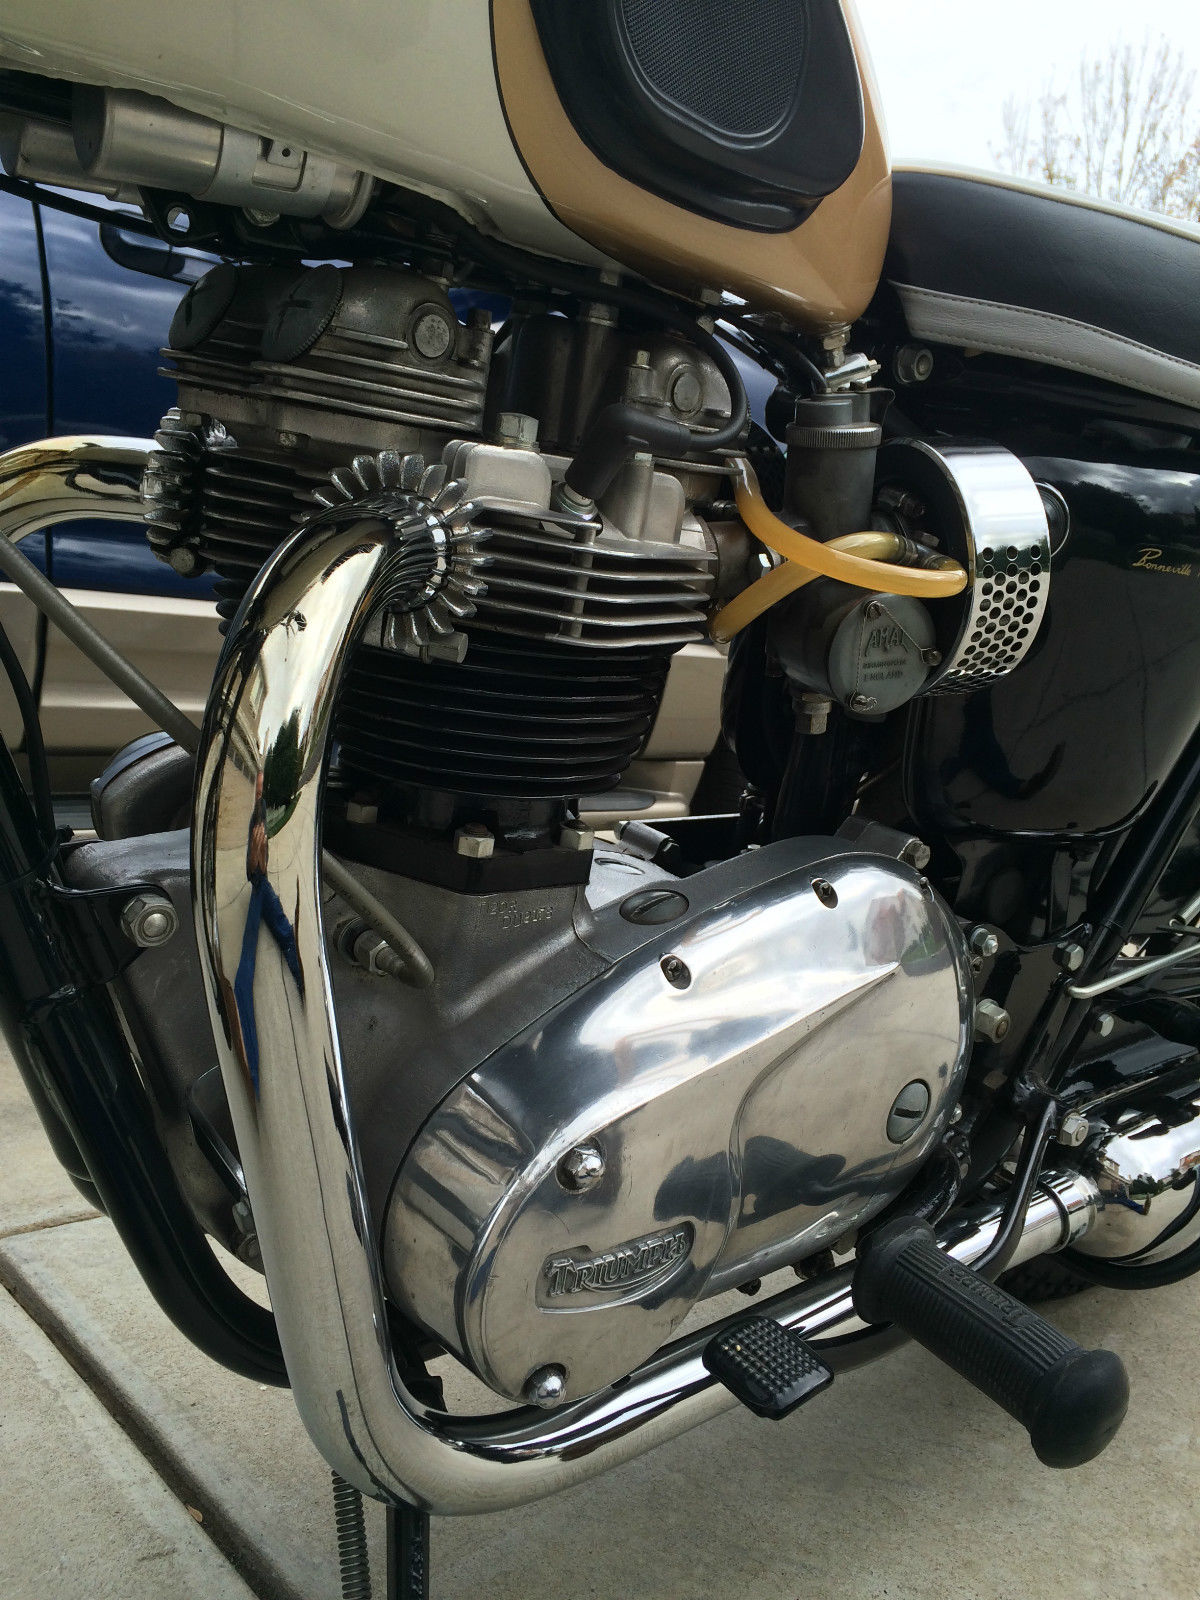 Triumph Bonneville - 1964 - Engine and Gearbox, Exhaust and Cylinders.